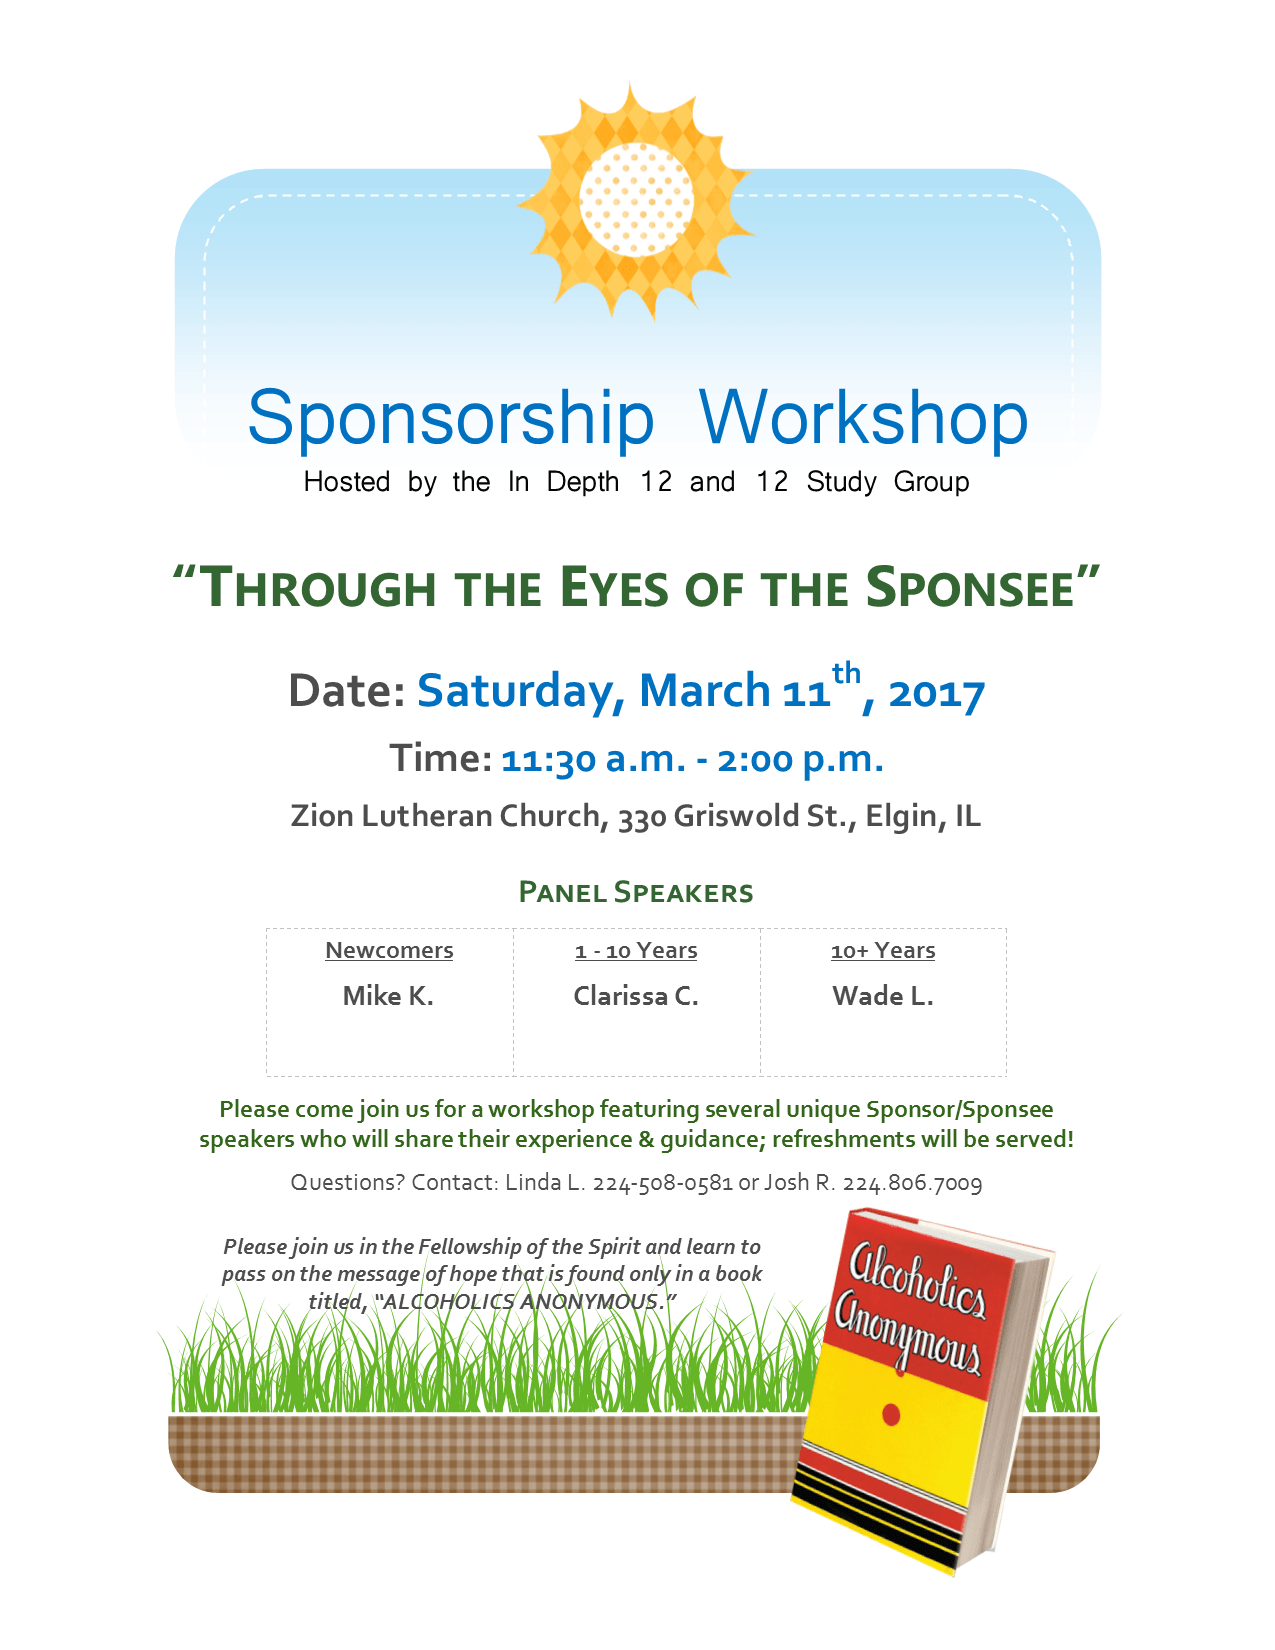 Sponsorship Workshop - Through the Eyes of the Sponsee 1